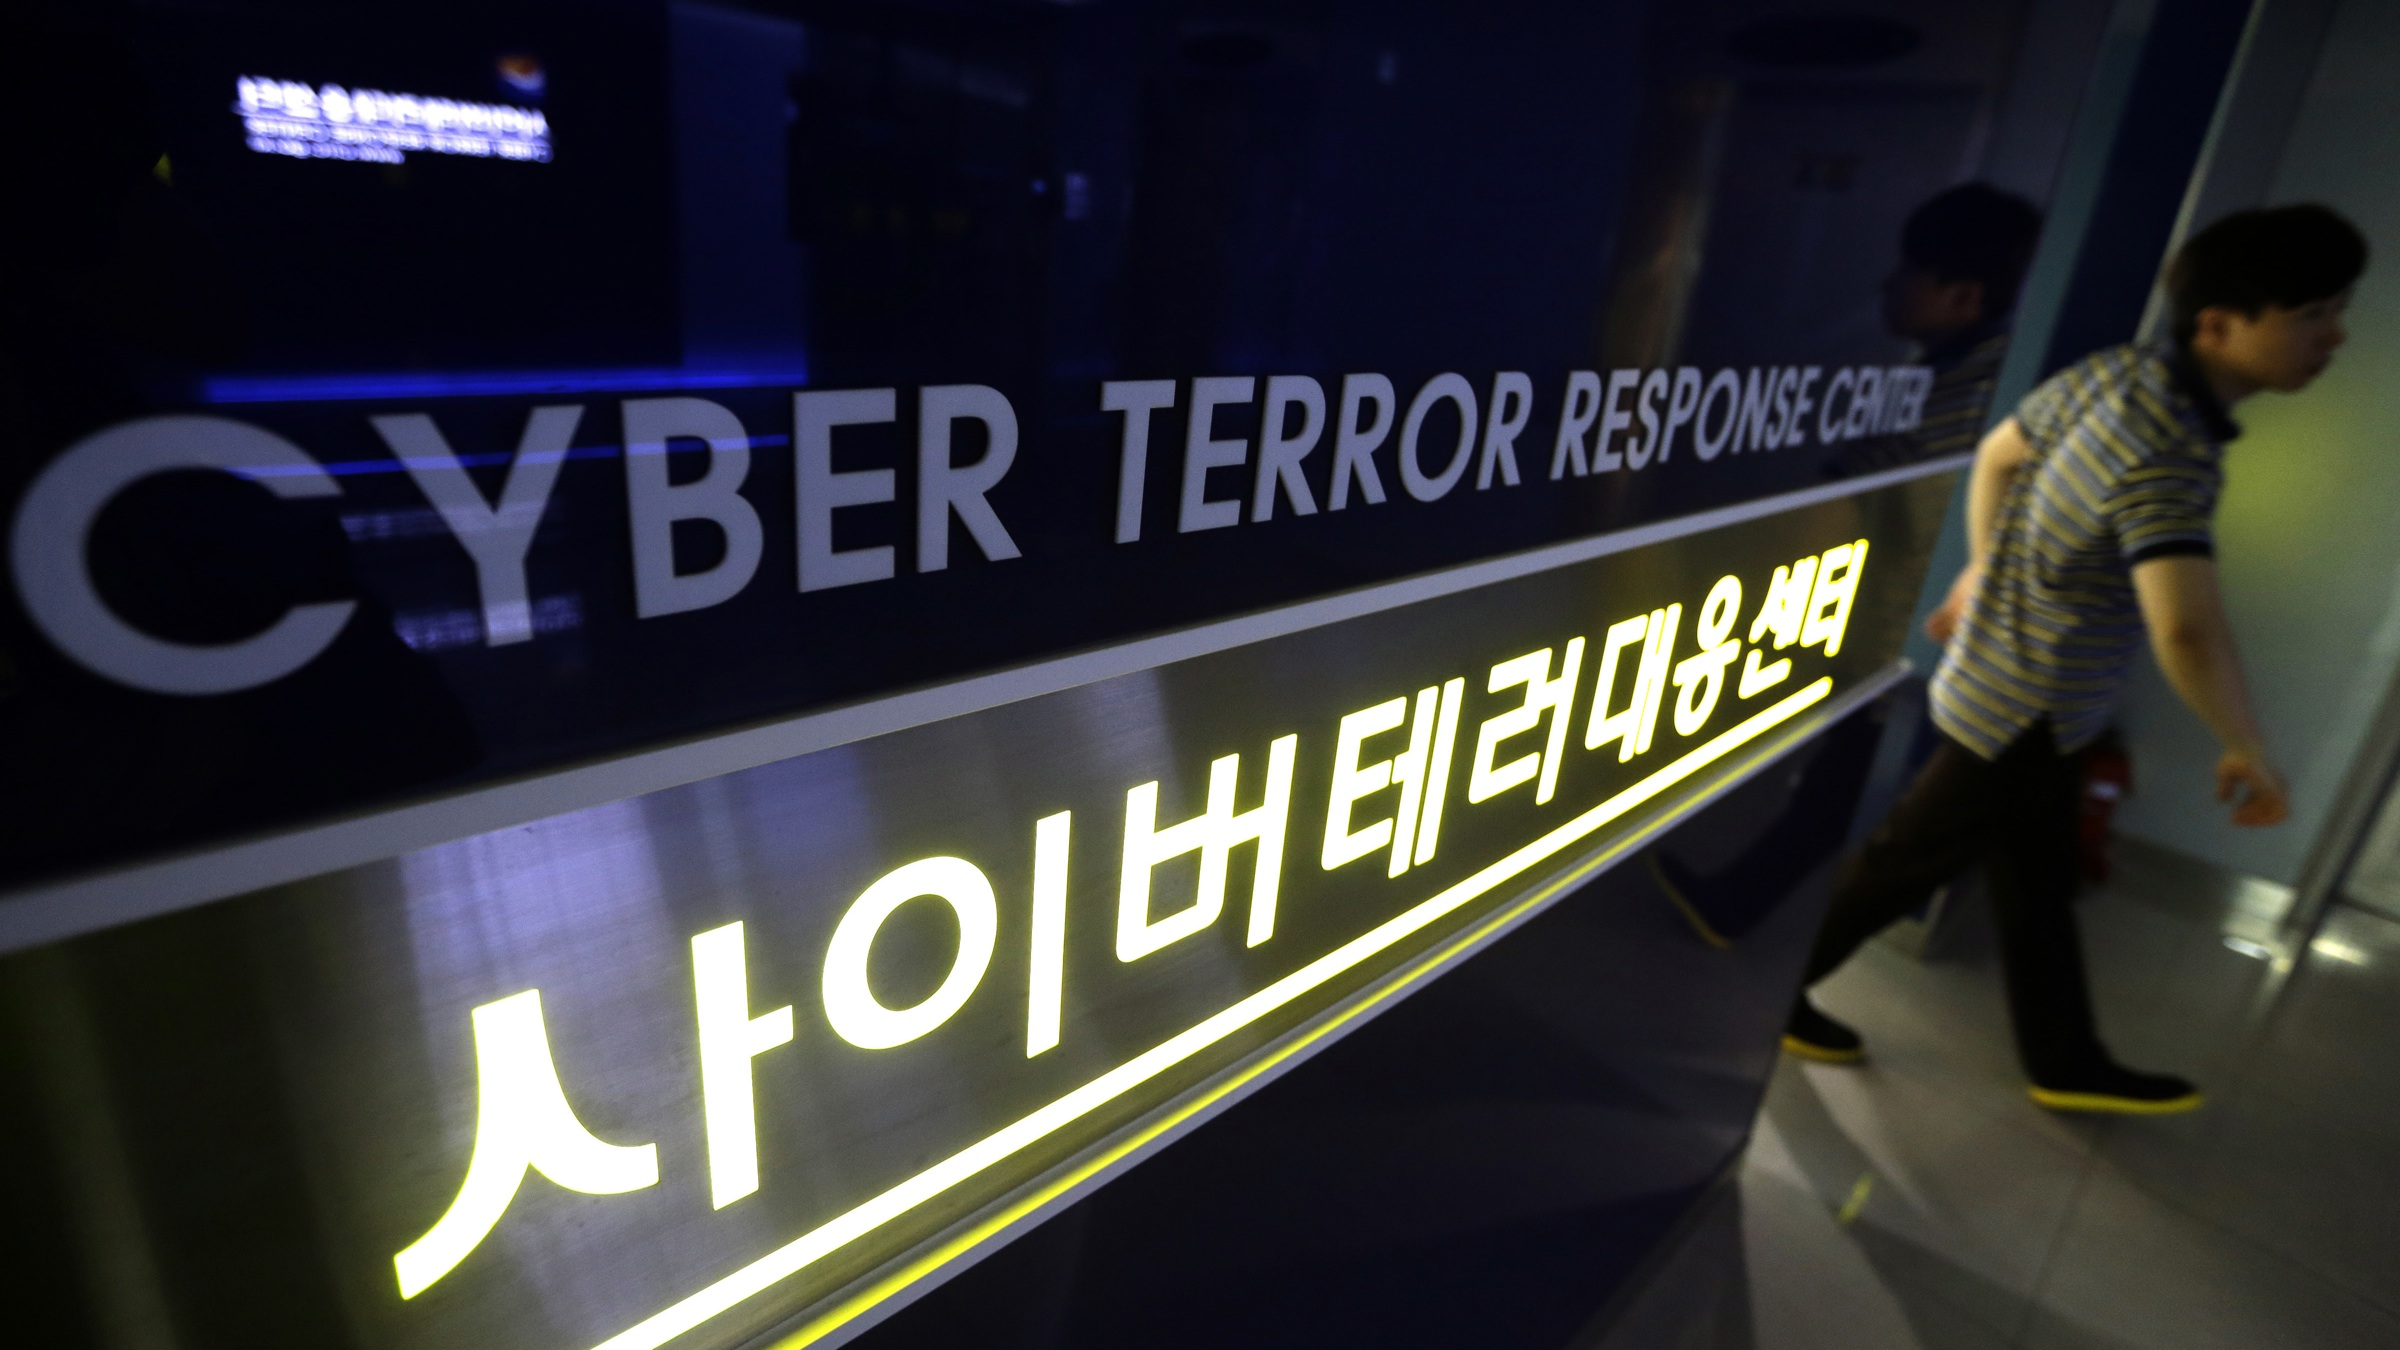 EMBARGOED UNTIL 12:01 JULY 9, 2013 PST (0700 GMT), HOLD FOR USE WITH STORY SLUGGED SOUTH KOREA CYBERATTACKS KOREA BY YOUKYUNG LEE and MARTHA MENDOZA, A man walks by a sign at Cyber Terror Response Center of National Police Agency in Seoul, South Korea, Friday, July 5, 2013. (AP Photo/Lee Jin-man)